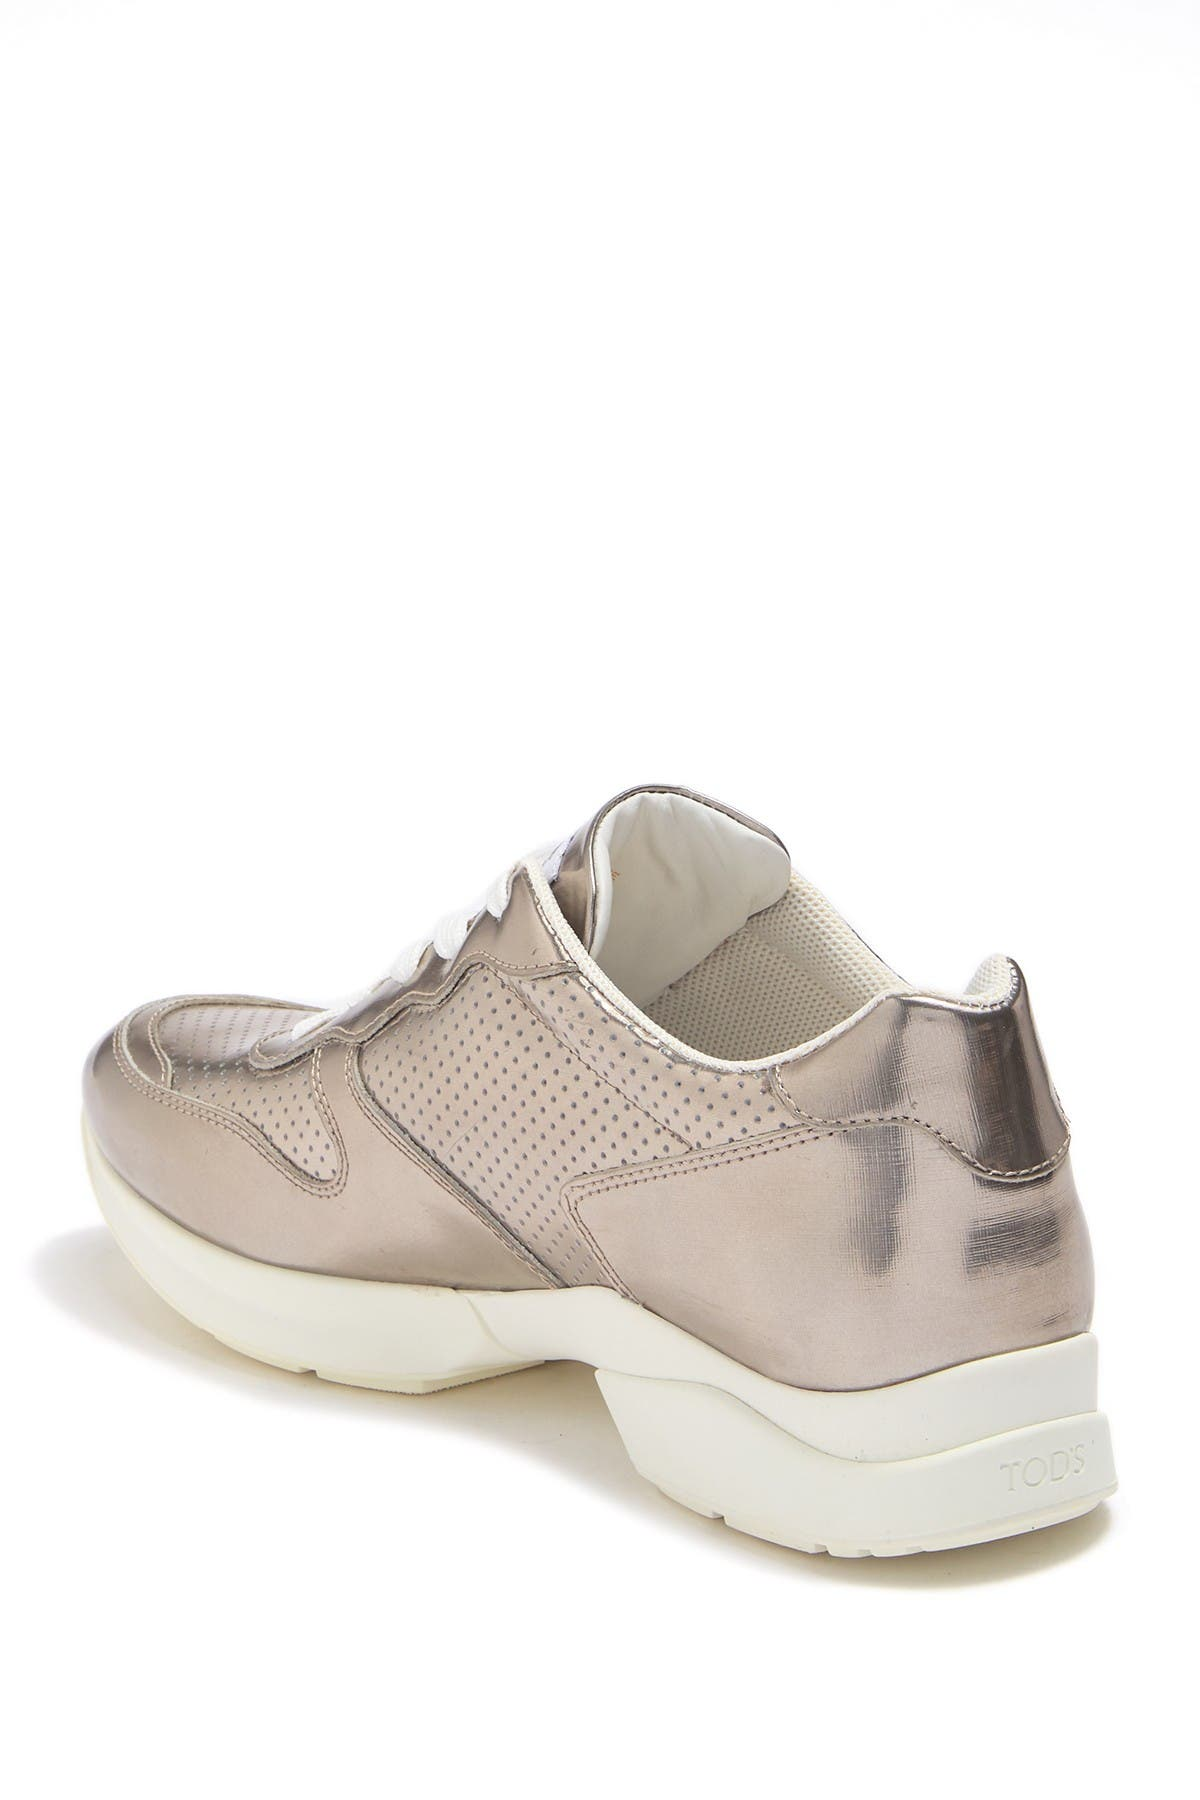 Image of Tod's Sportivo Leather Active Sneaker